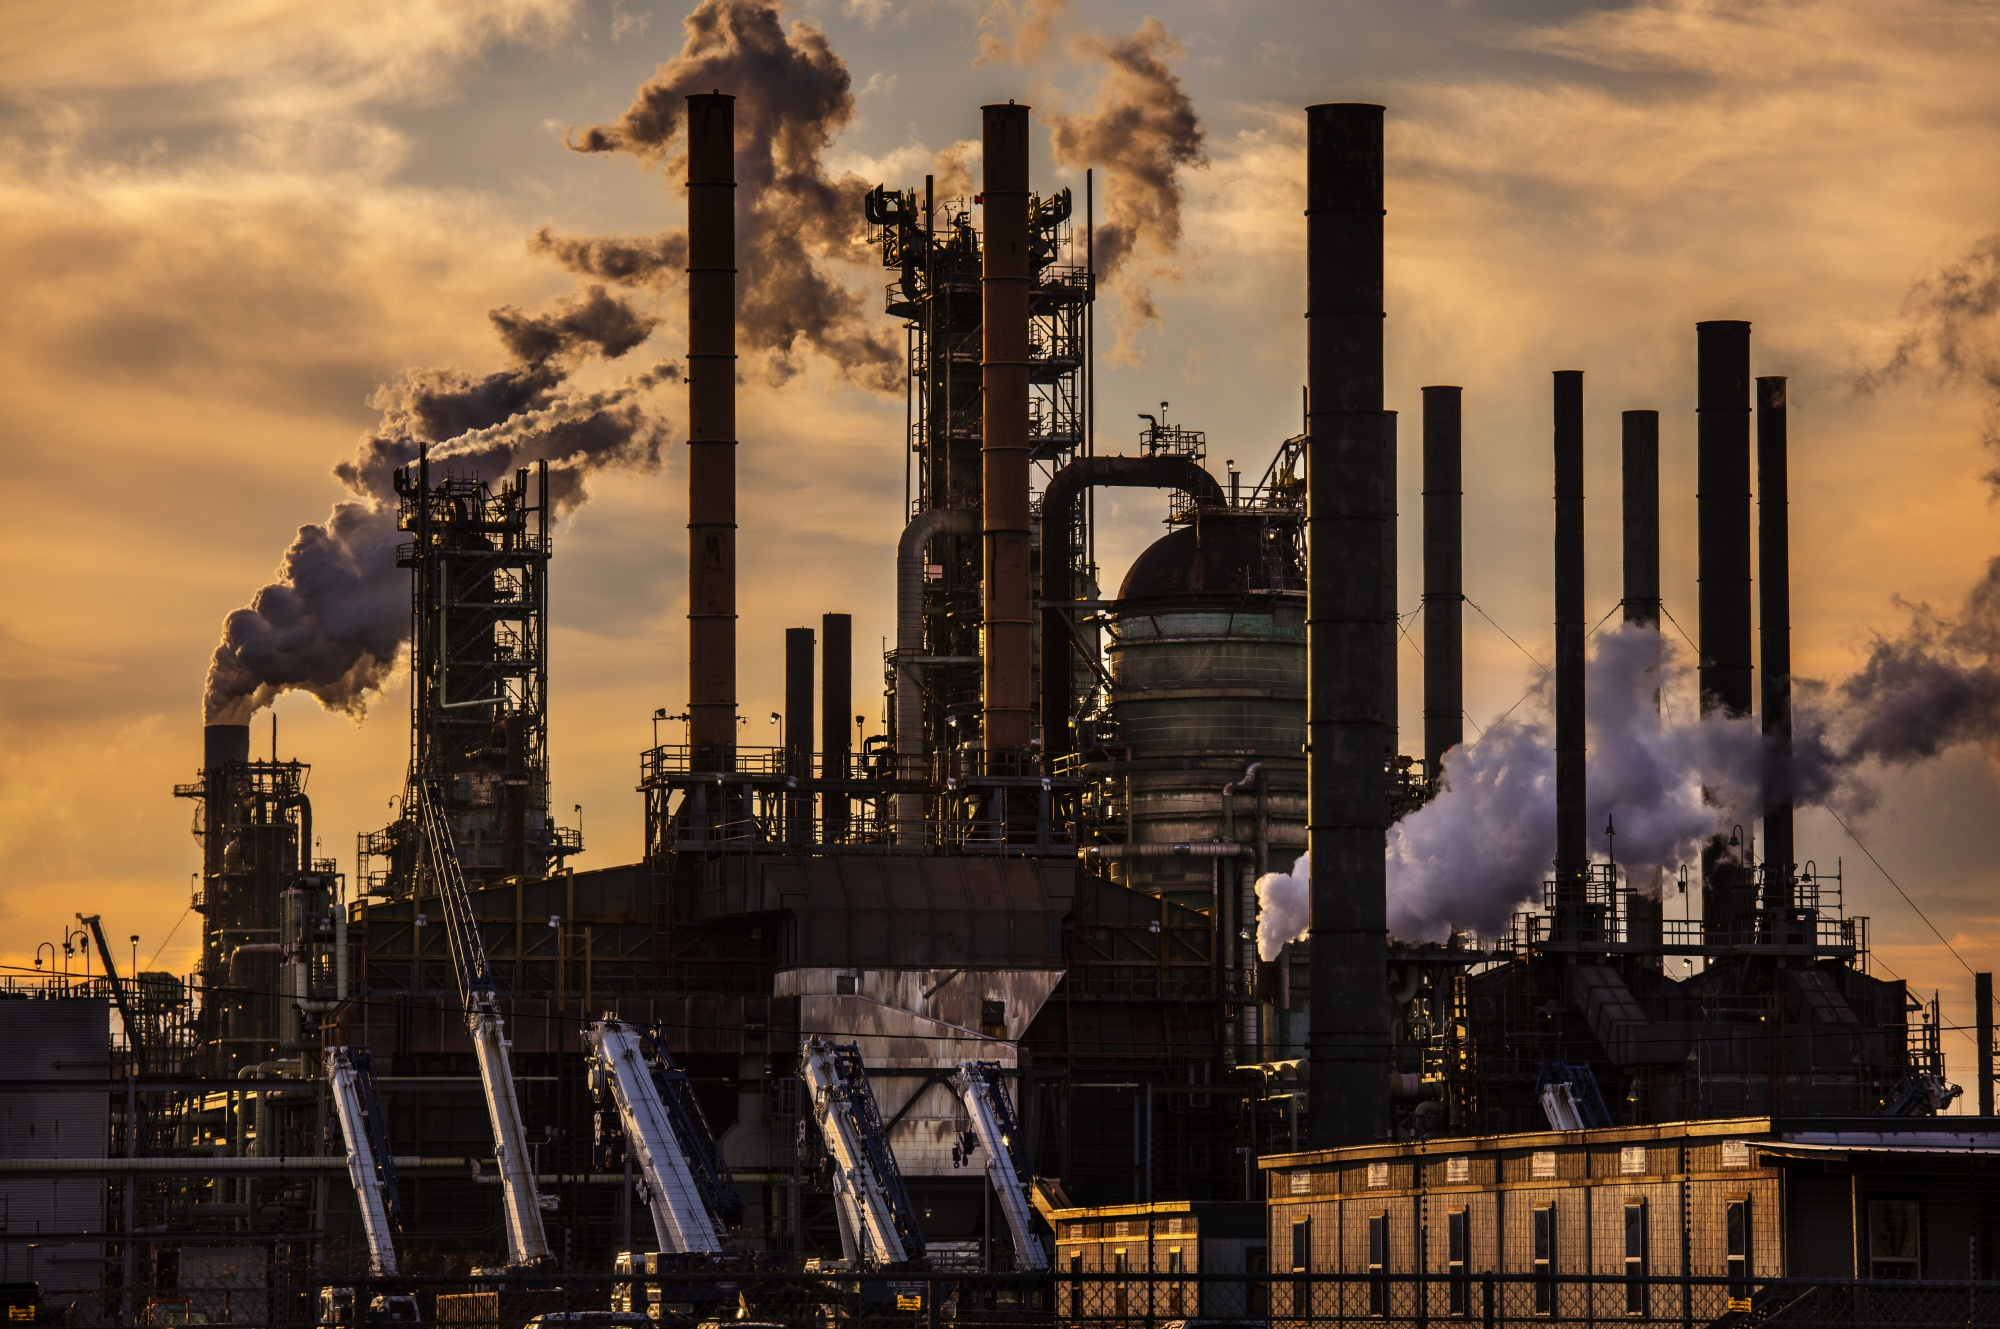 Exxon Mobil's oil refinery in Baton Rouge, Louisiana in February 2020.